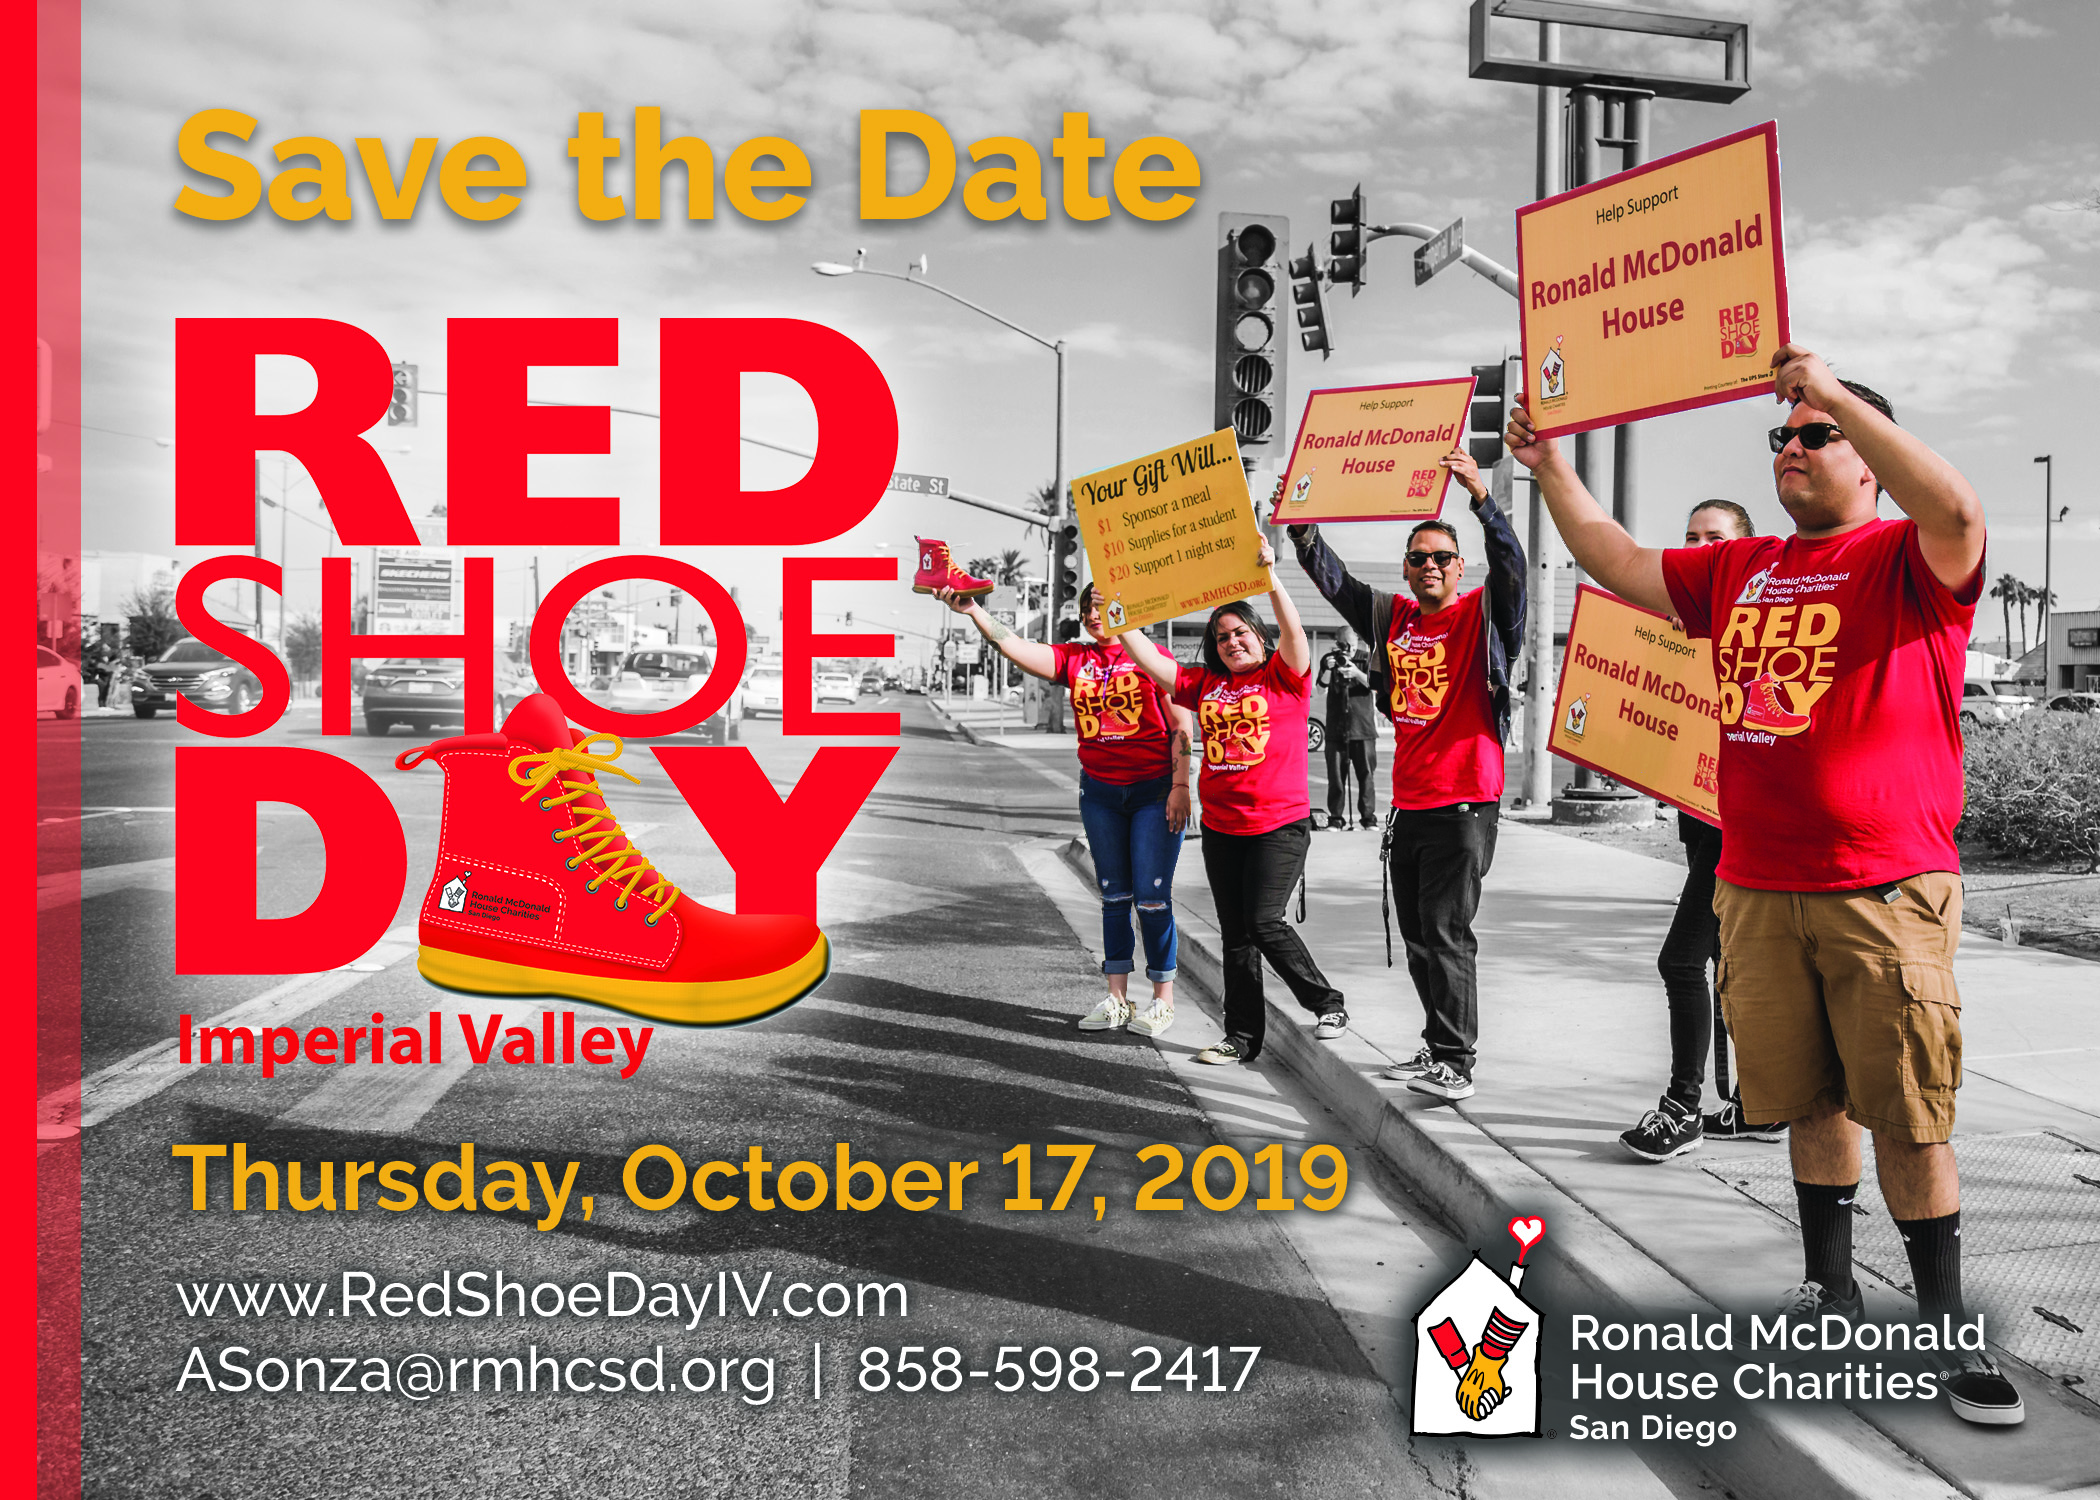 Save the Date for Red Shoe Day Imperial Valley October 17, 2019